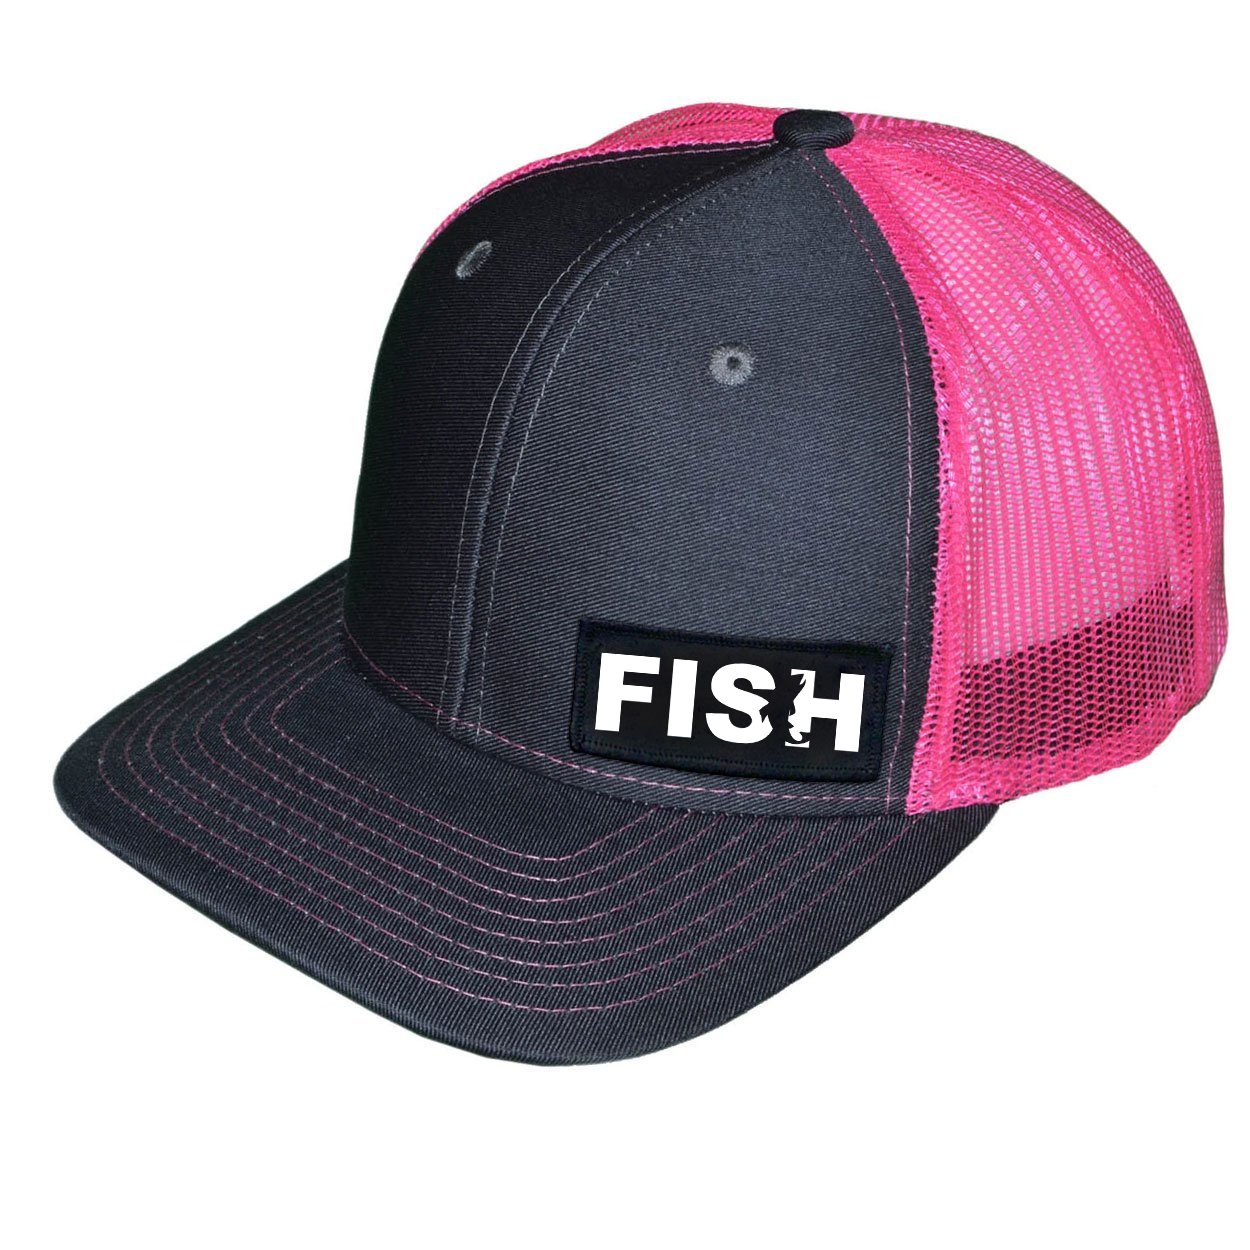 Fish Catch Logo Night Out Woven Patch Snapback Trucker Hat Dark Gray/Neon Pink (White Logo)